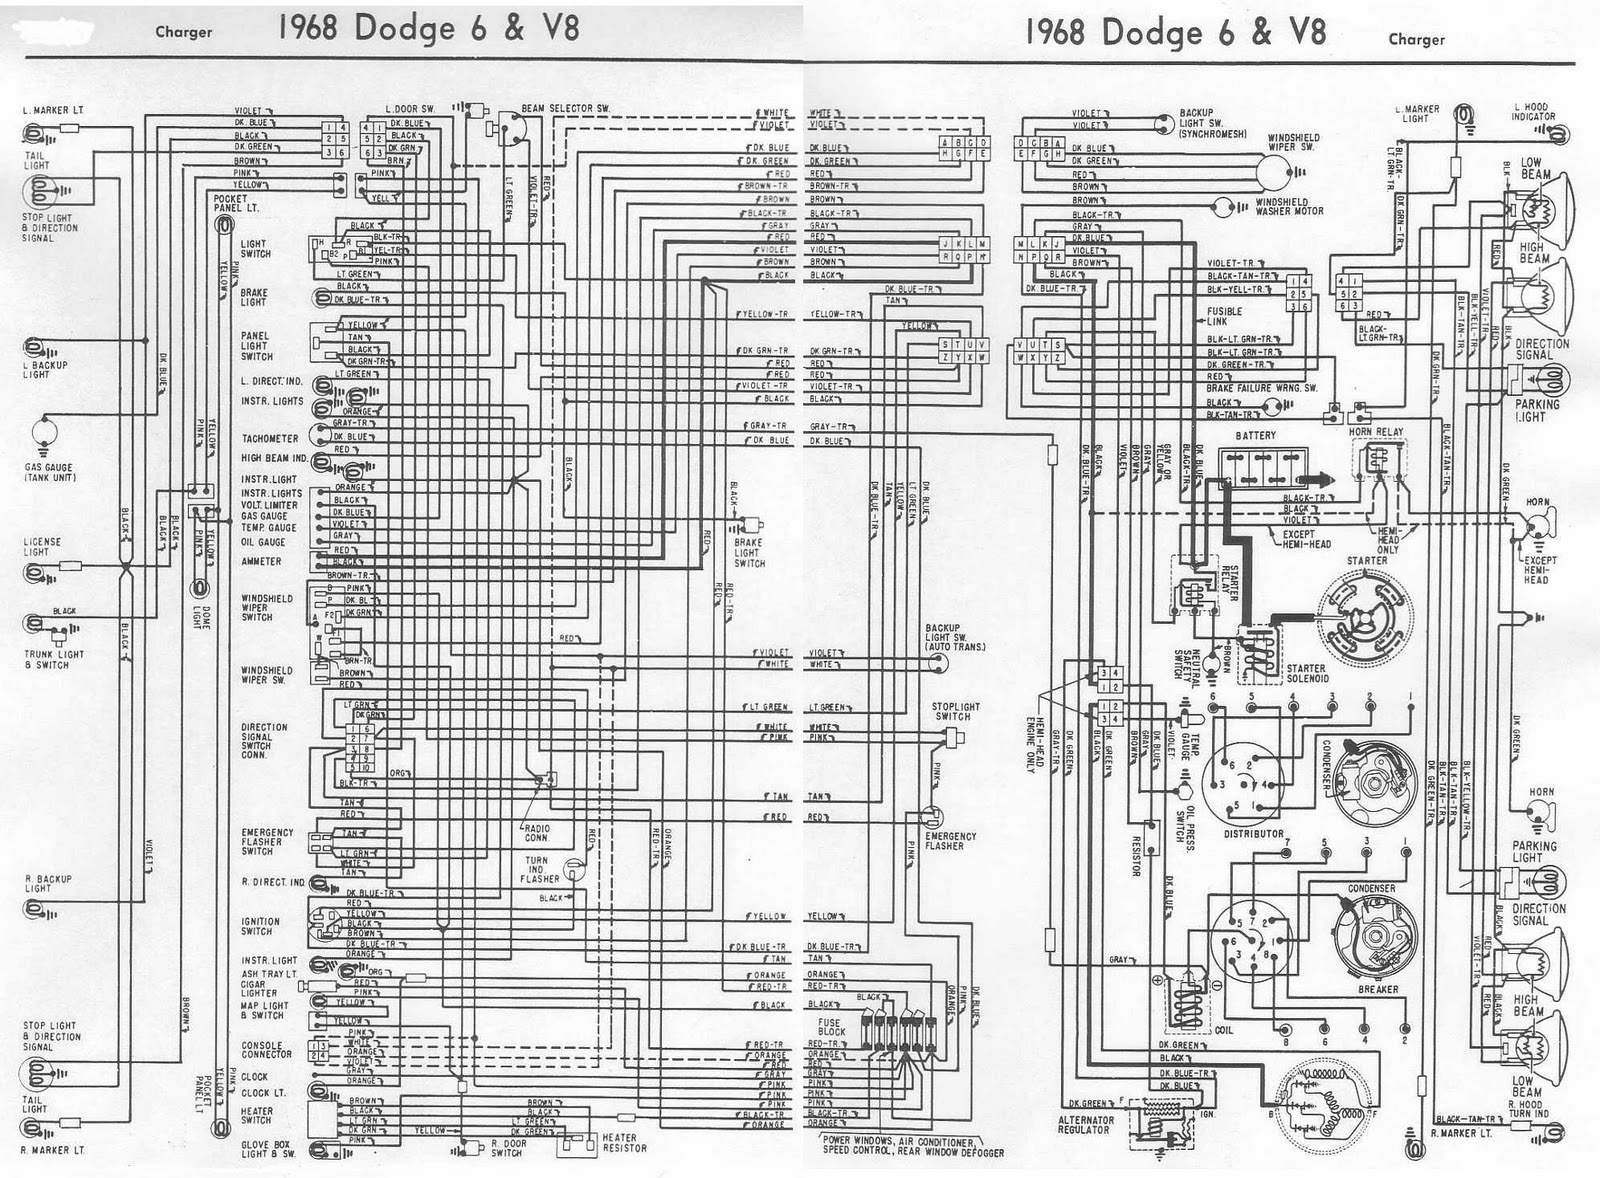 Dodge+Charger+1968+6+and+V8+Complete+Electrical+Wiring+Diagram dodge charger wiring diagram dodge wiring diagrams instruction 1970 dodge coronet wiring diagram at mifinder.co